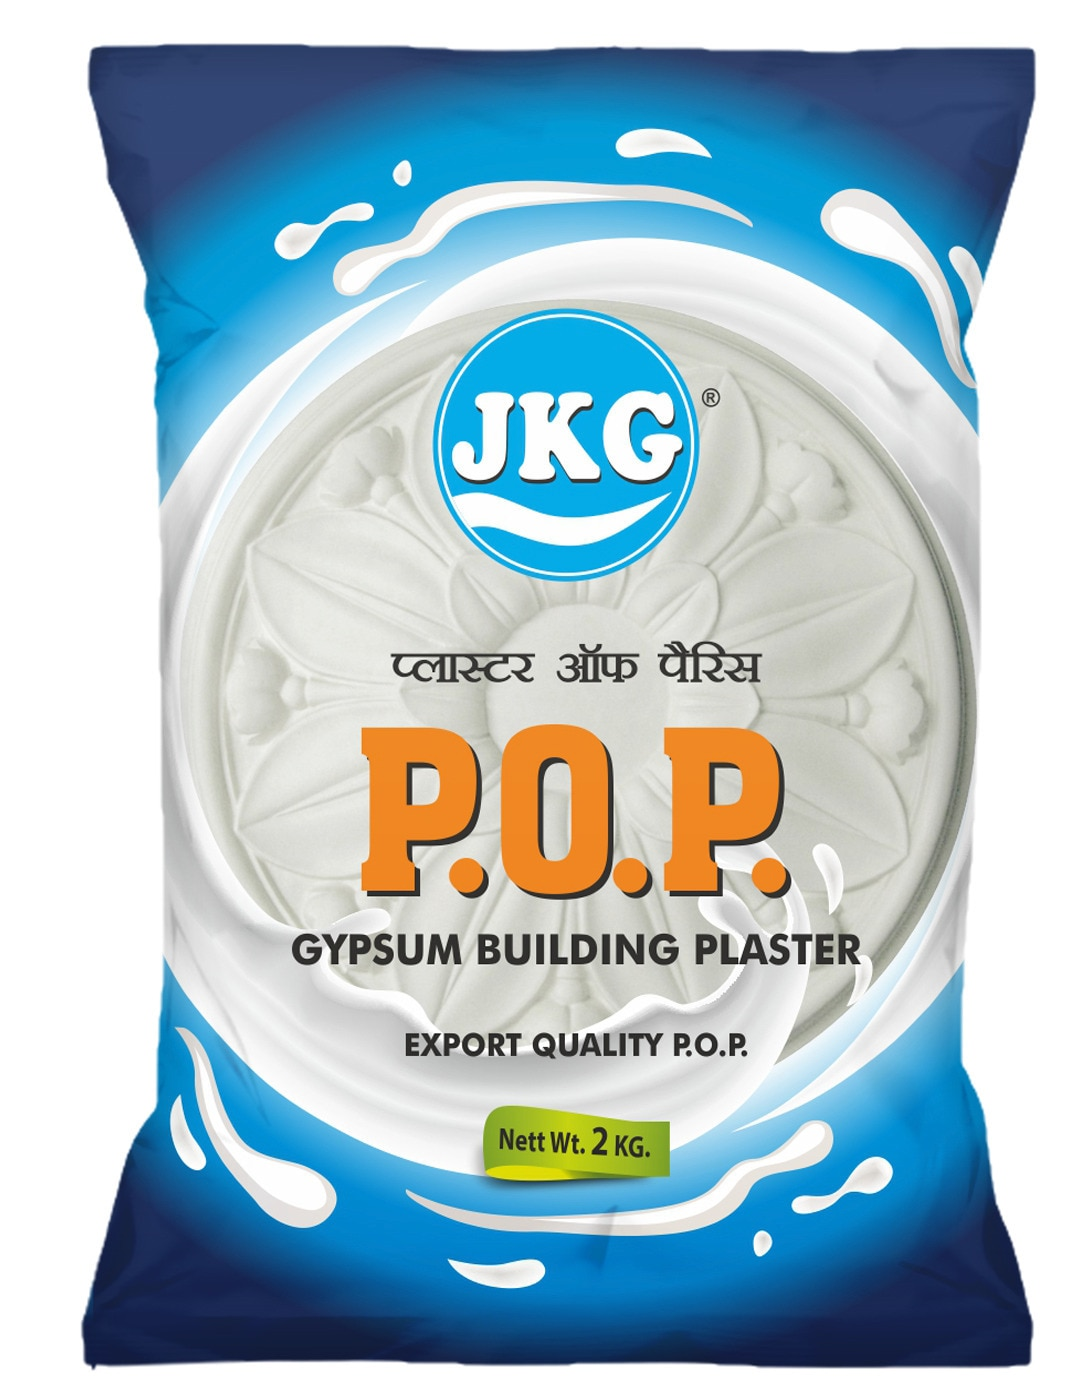 Best POP manufacturers in Gurgaon Best POP manufacturer in delhi ncr  We are renowned manufacturer of POP...We are manufacturing best quality of POP  http://www.jkgcompany.com/wall-putty-pop/products/p-o-p-plaster-of-paris/